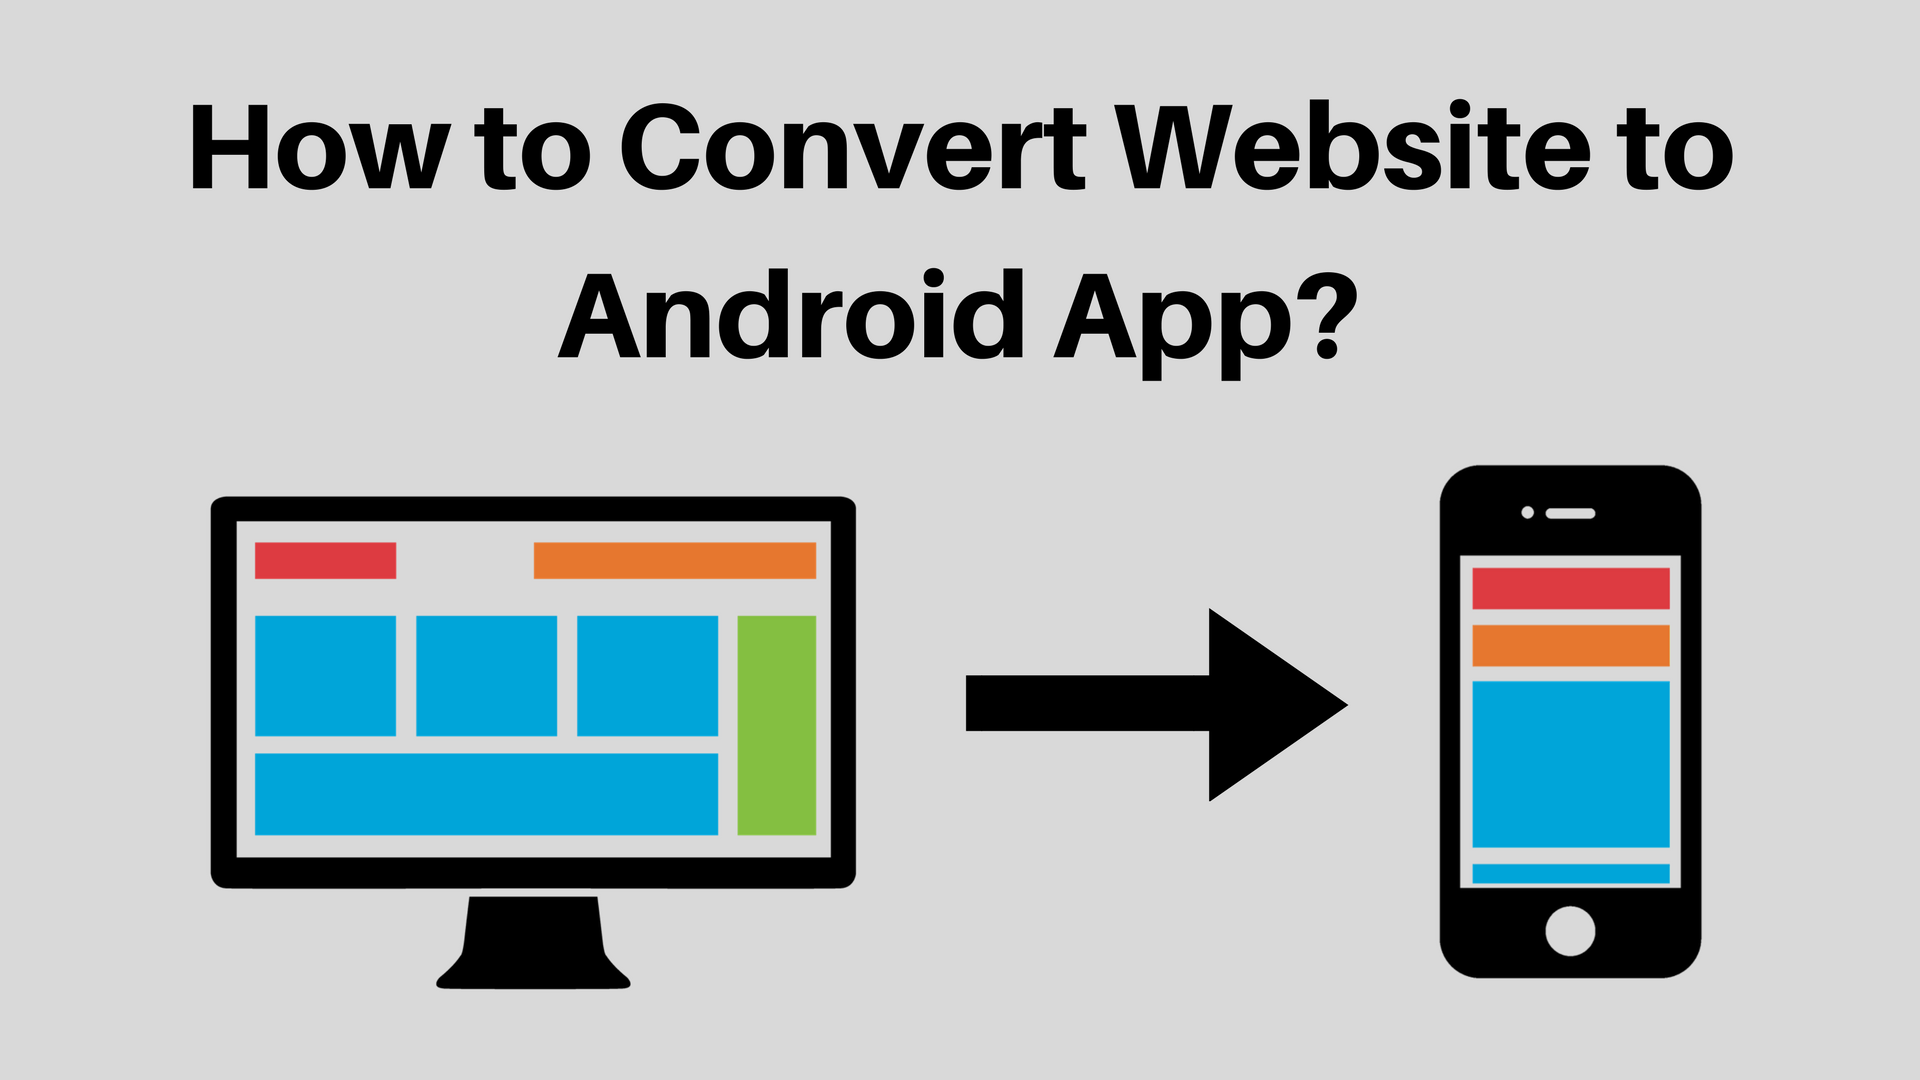 How to Convert Website to Android App Using Android Studio